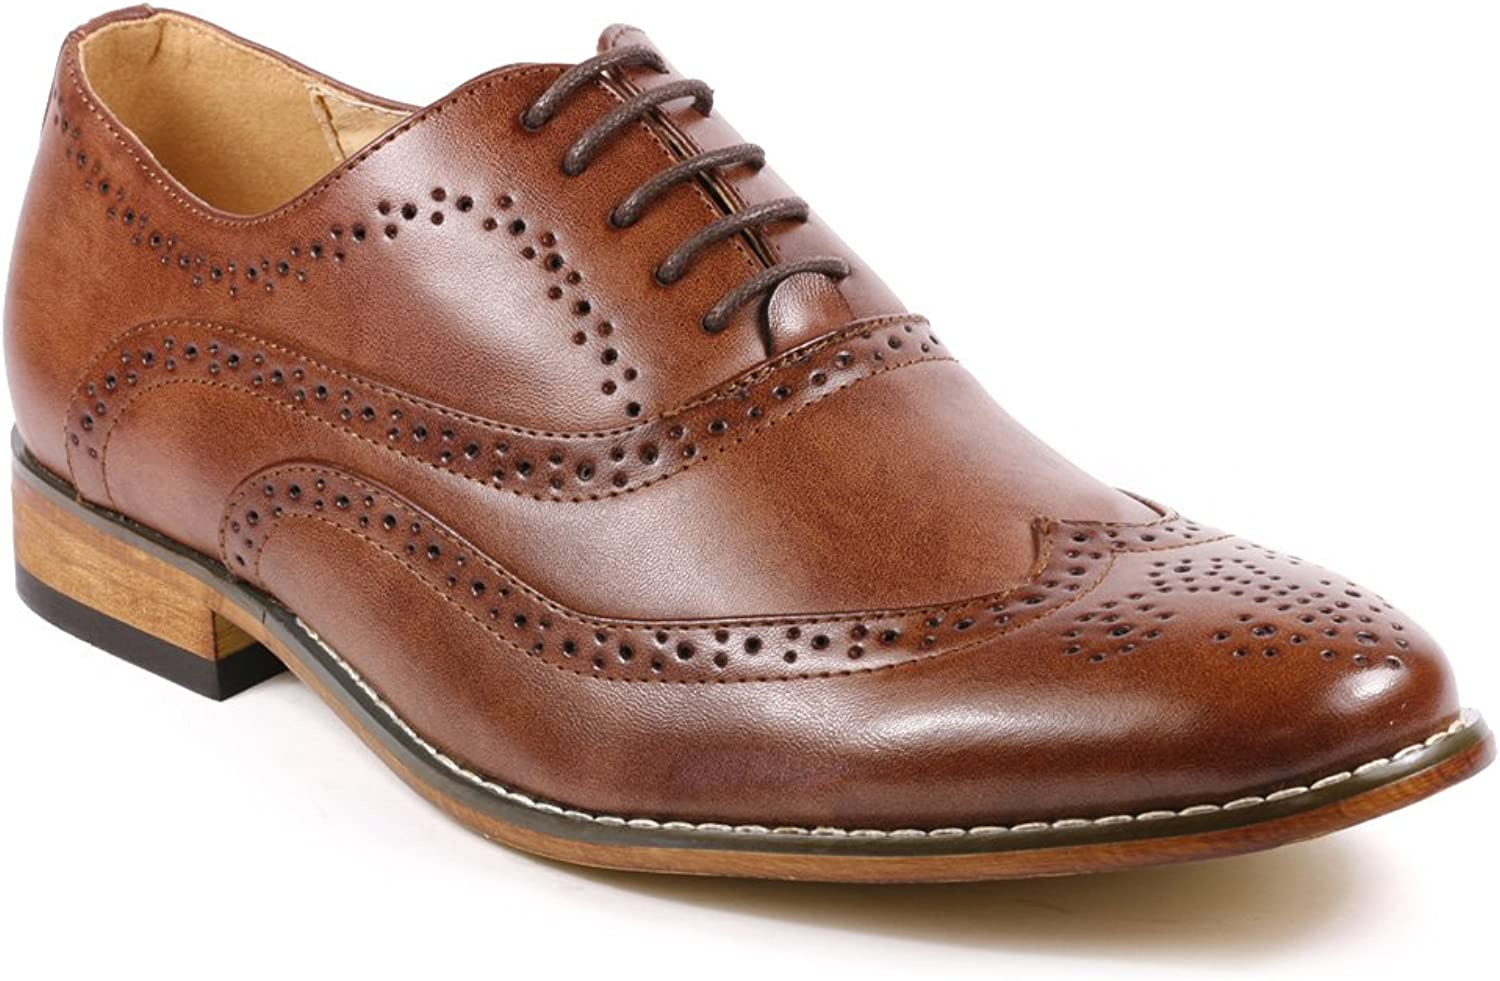 UV SIGNATURE UV002 Men's Wing Tip Perforated Lace Up Oxford Dress shoes